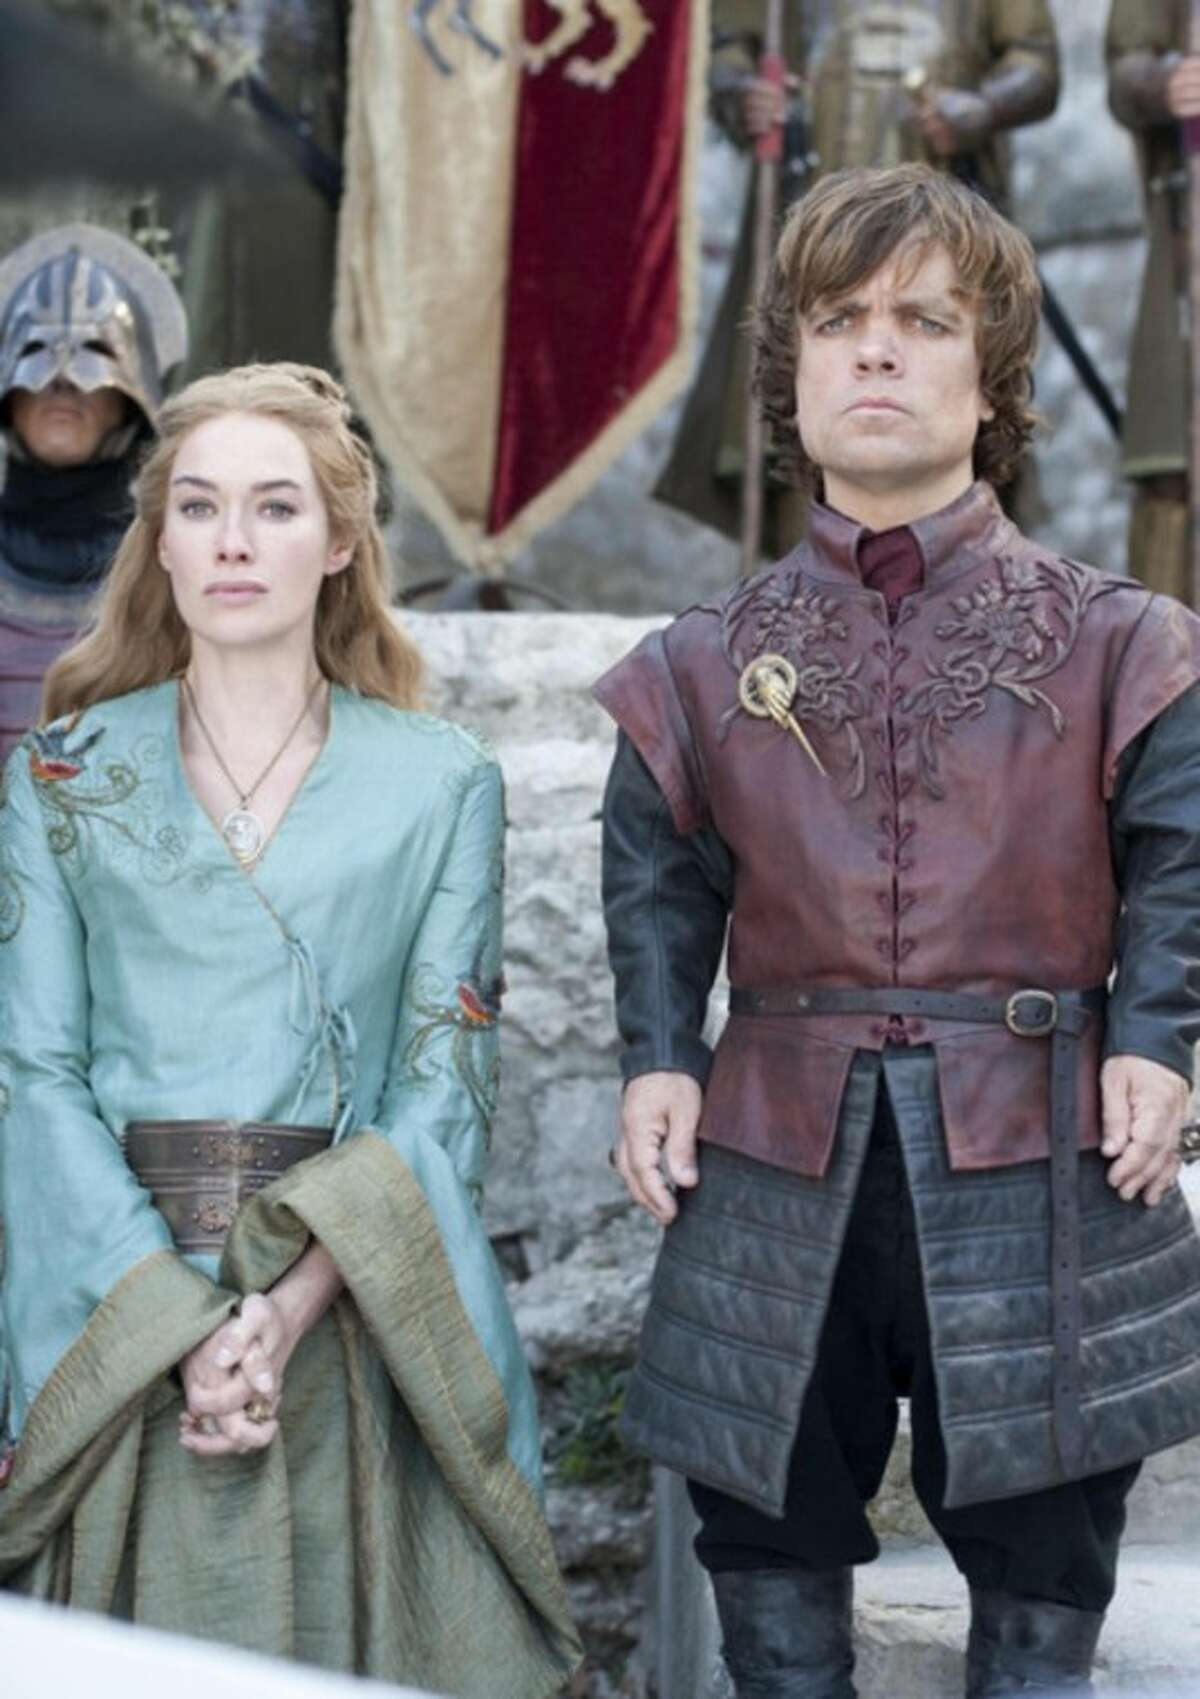 """FILE - In this publicity file photo provided by HBO, Lena Headey as Cersei Lannister, left, and Peter Dinklage as Tyrion Lannister, are shown in a scene from HBO's """"Game of Thrones."""" The program was nominated for an Emmy award for outstanding drama series on Thursday, July 19, 2012. The 64th annual Primetime Emmy Awards will be presented Sept. 23 at the Nokia Theatre in Los Angeles, hosted by Jimmy Kimmel and airing live on ABC. (AP Photo/HBO, Paul Schiraldi, File)"""